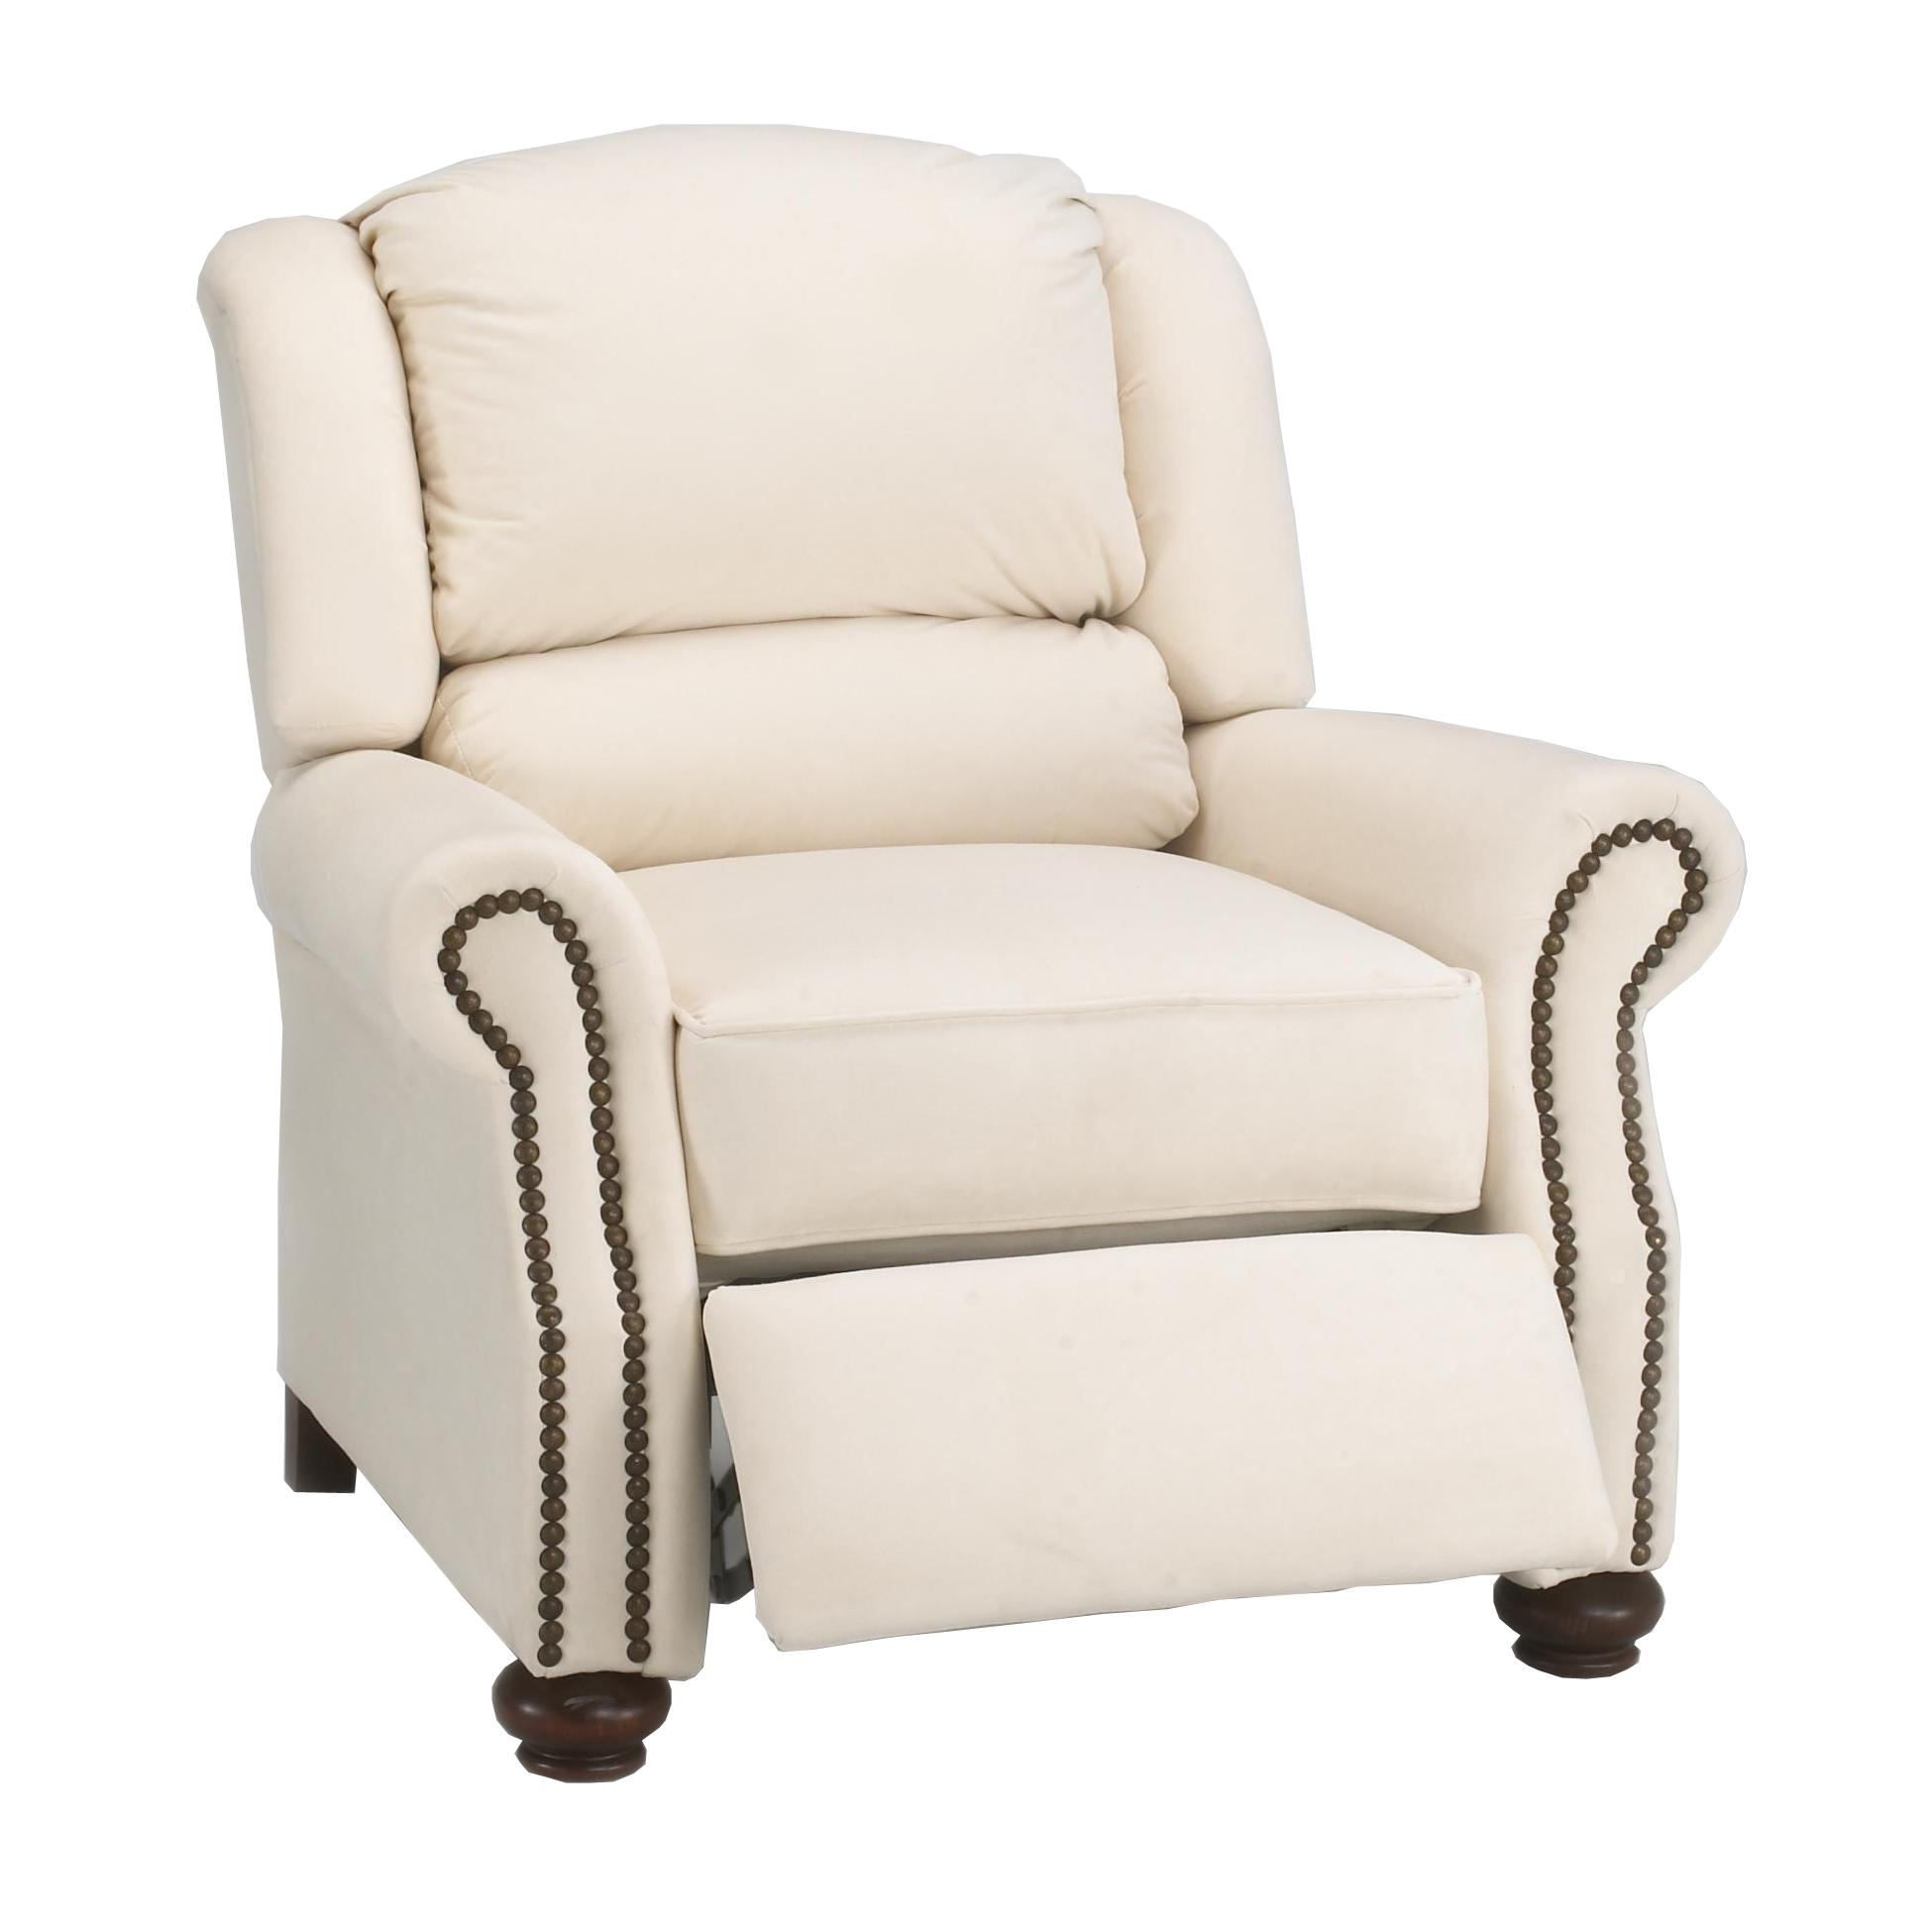 Superbe Juliet High Leg Recliner